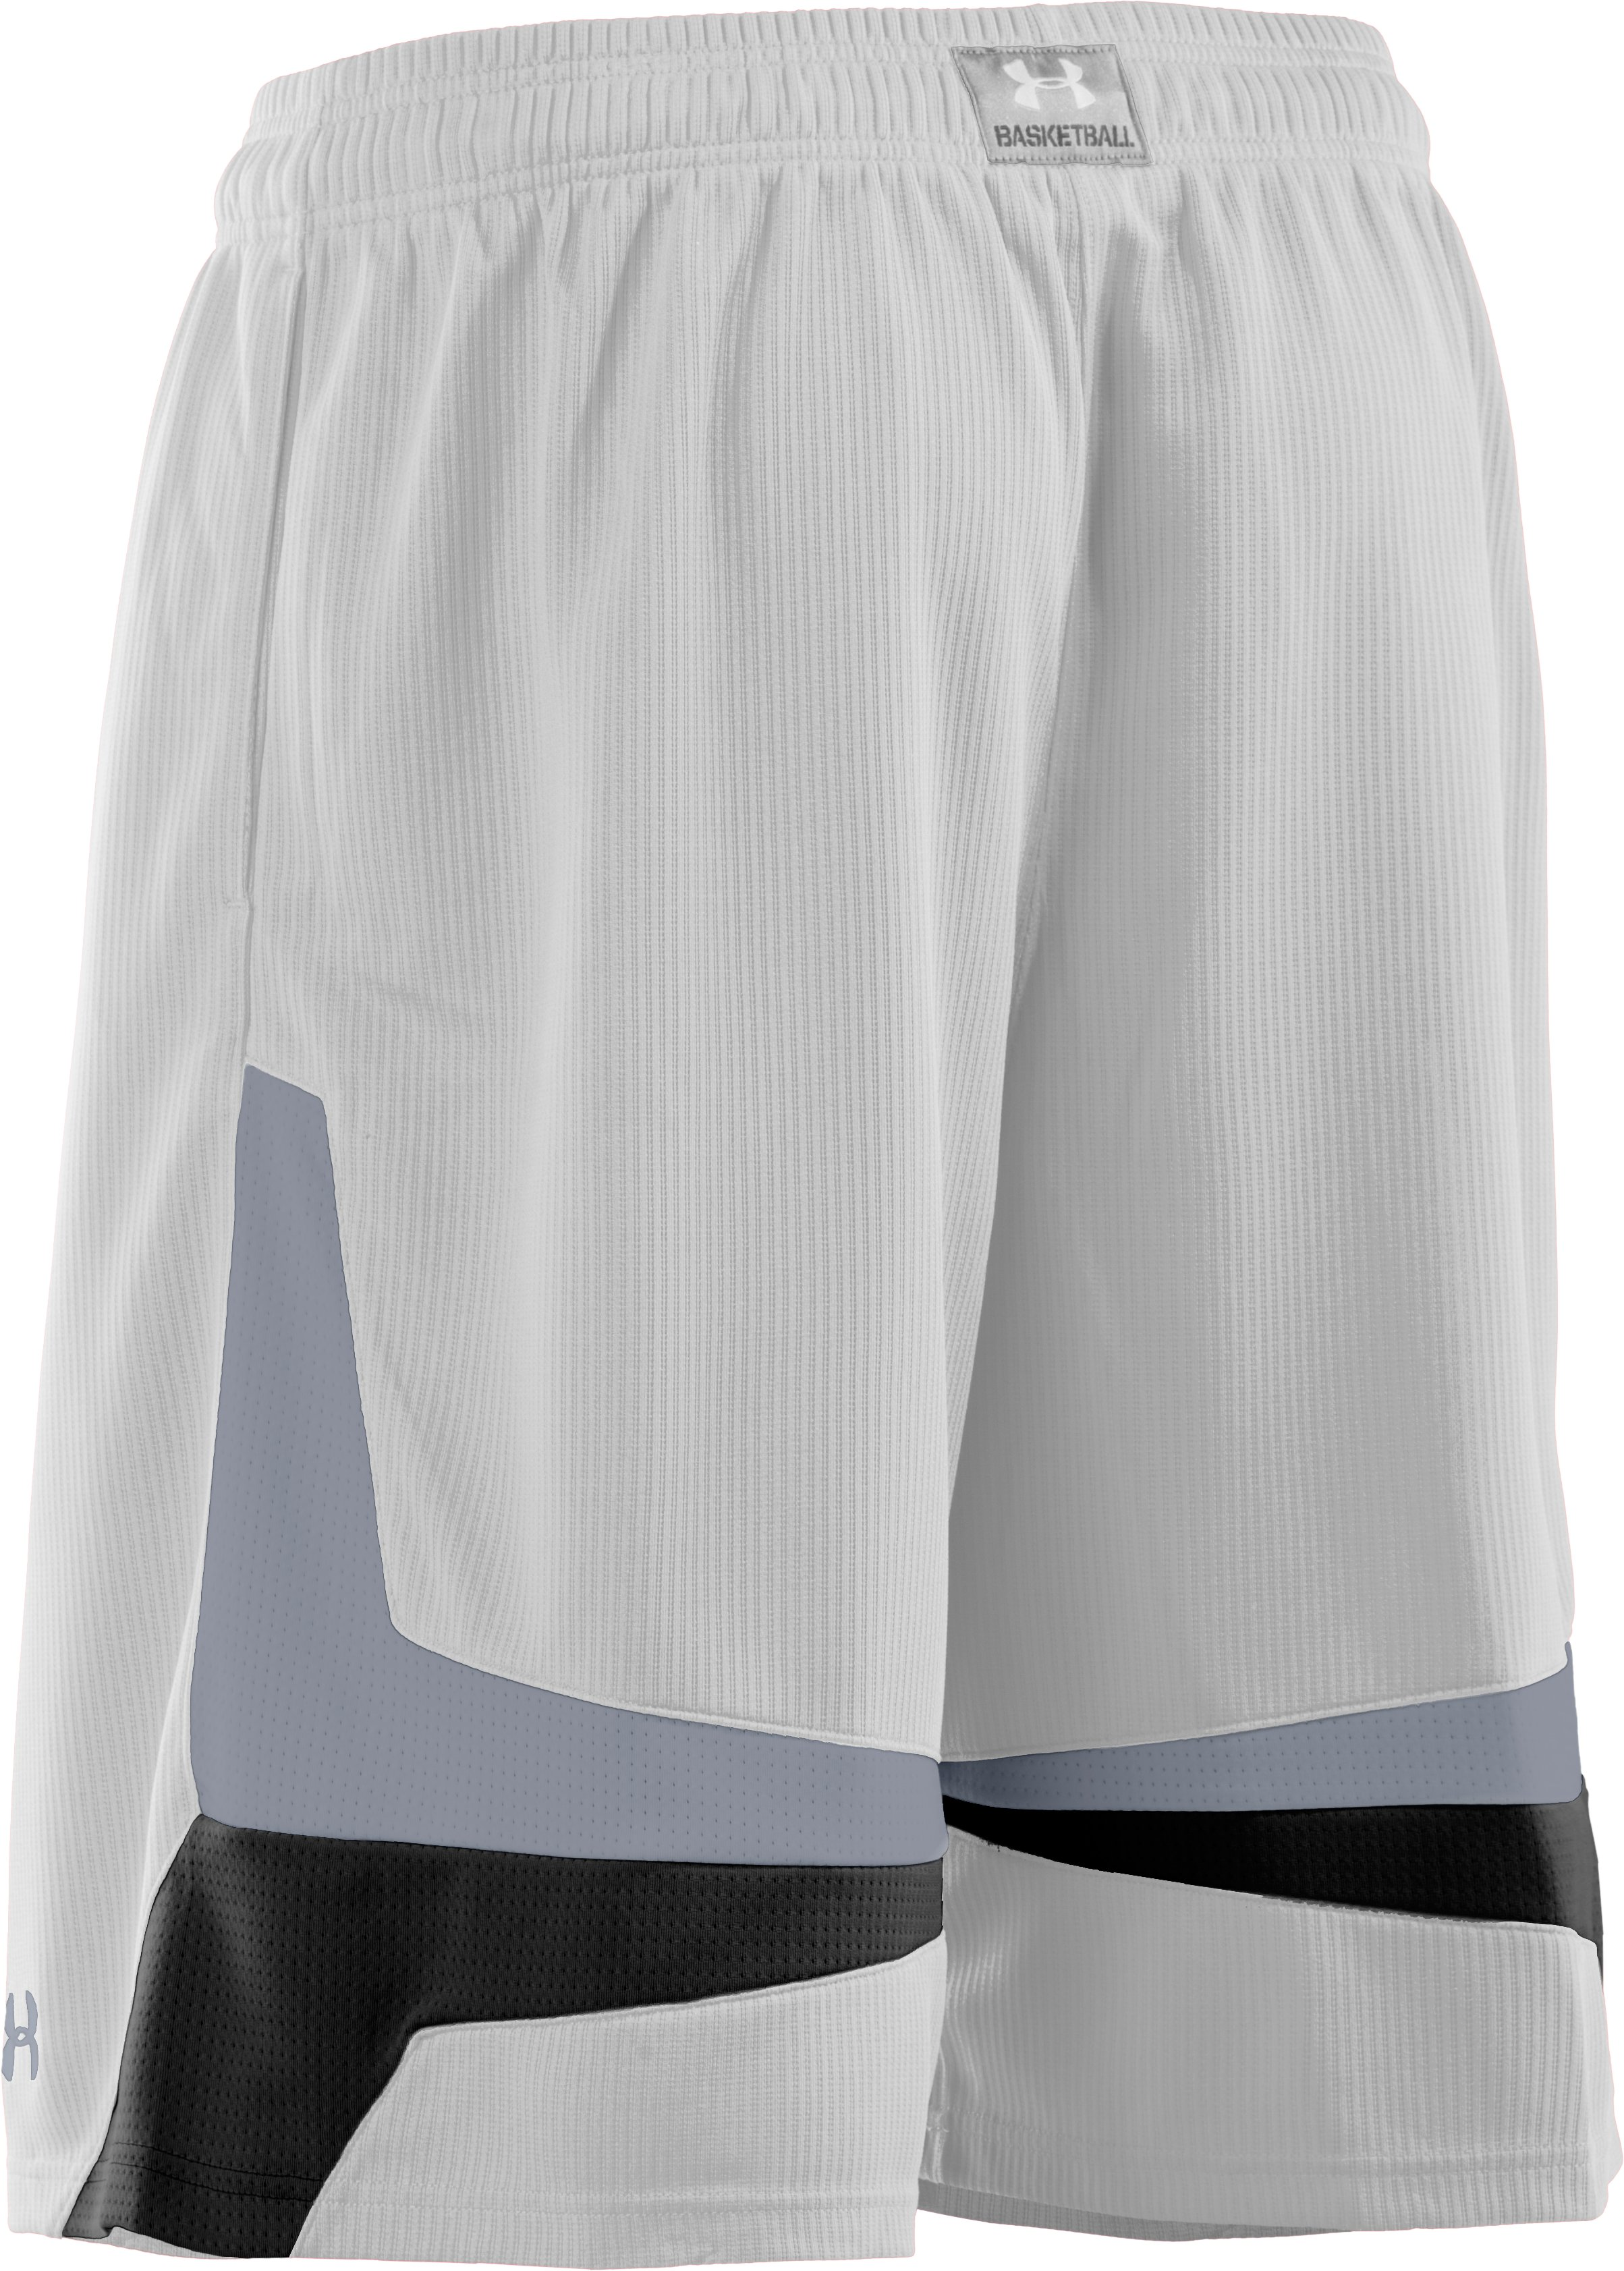 "Men's UA Mustang 10"" Basketball Shorts, White, undefined"